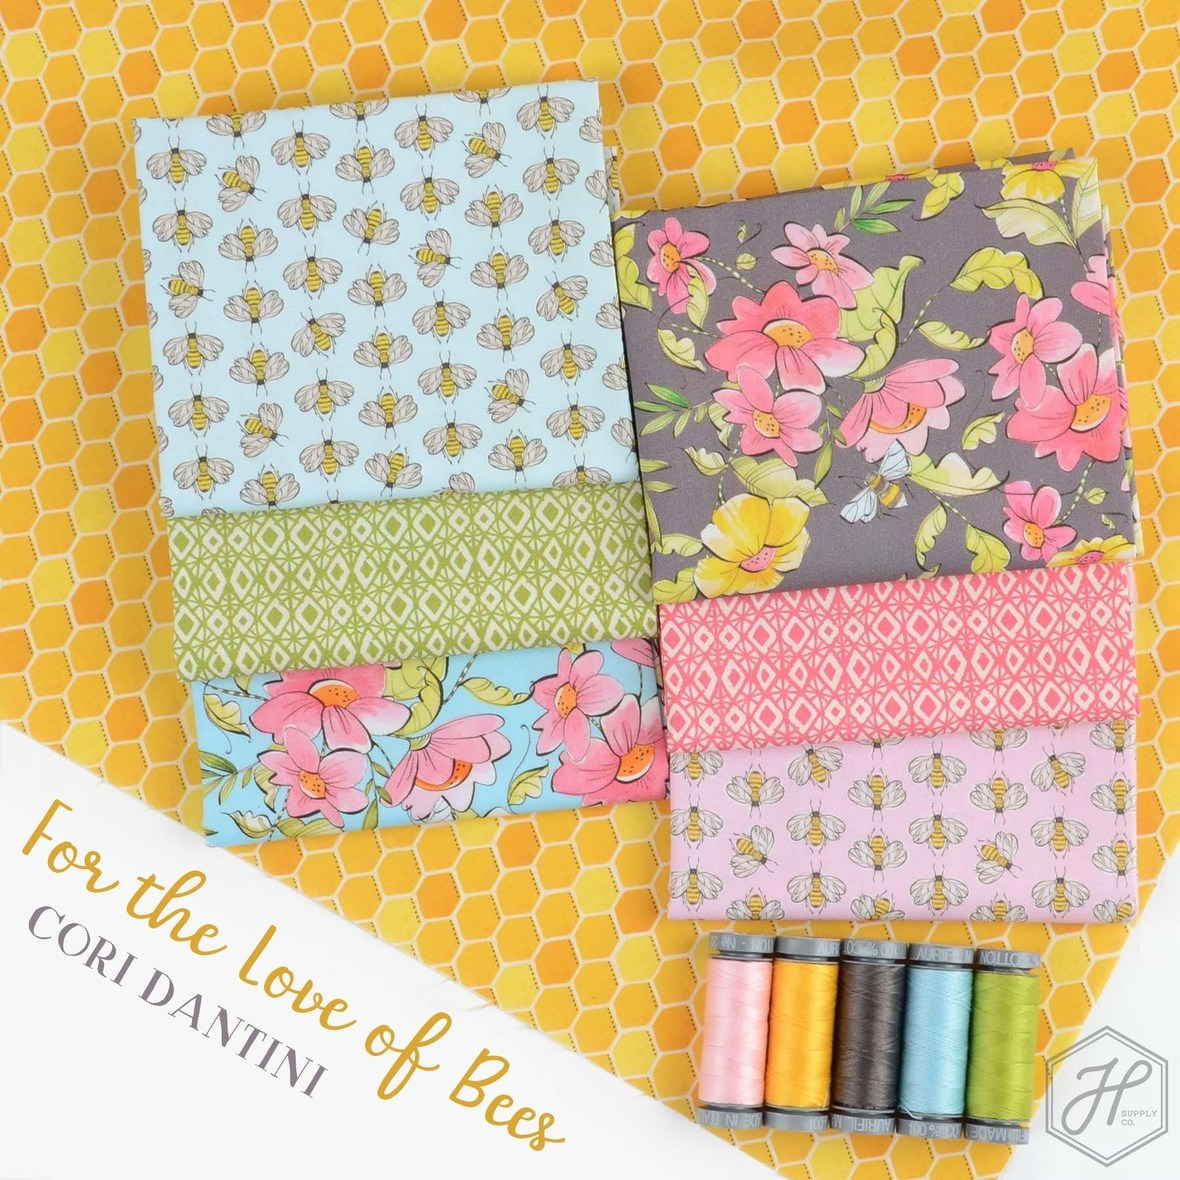 For the Love of Bees Fabric Cori Dantini at Hawthorne Supply Co